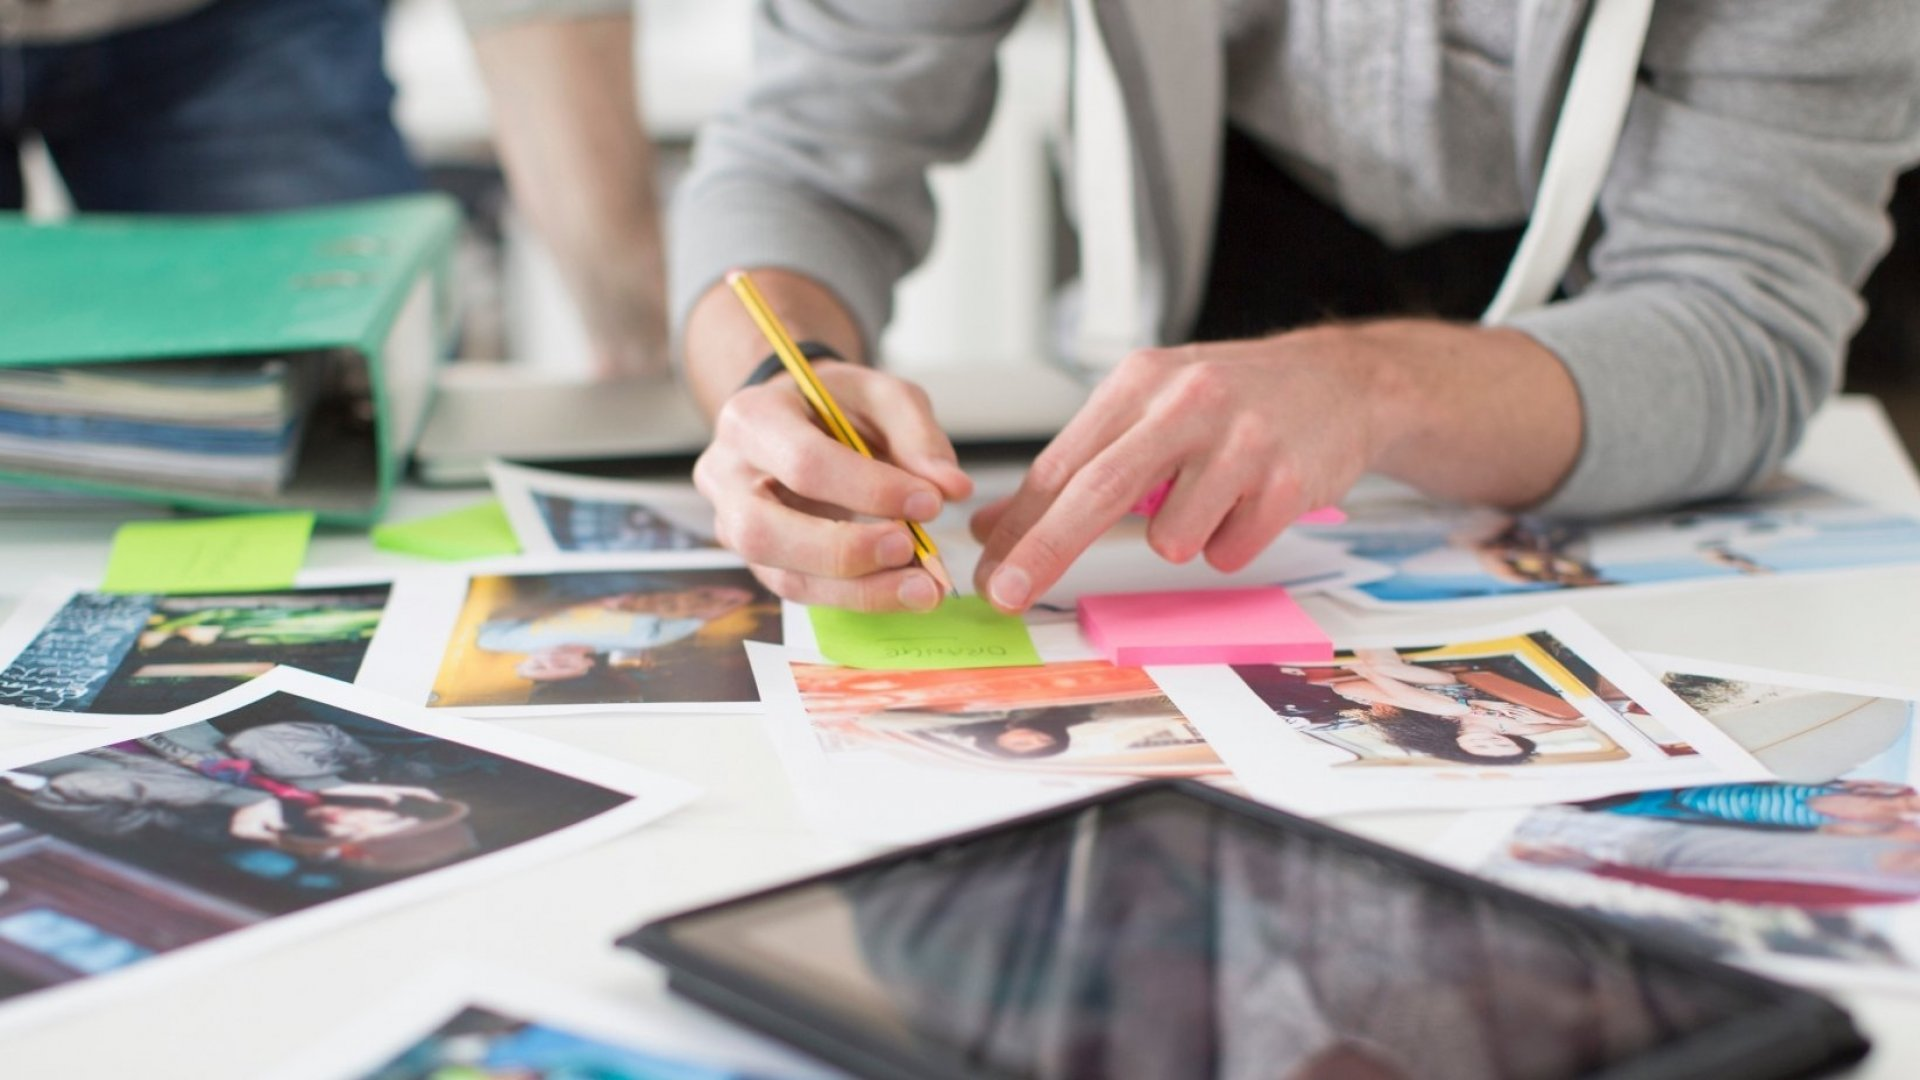 4 Things the Most Creative Leaders Make Sure to Do Every Week